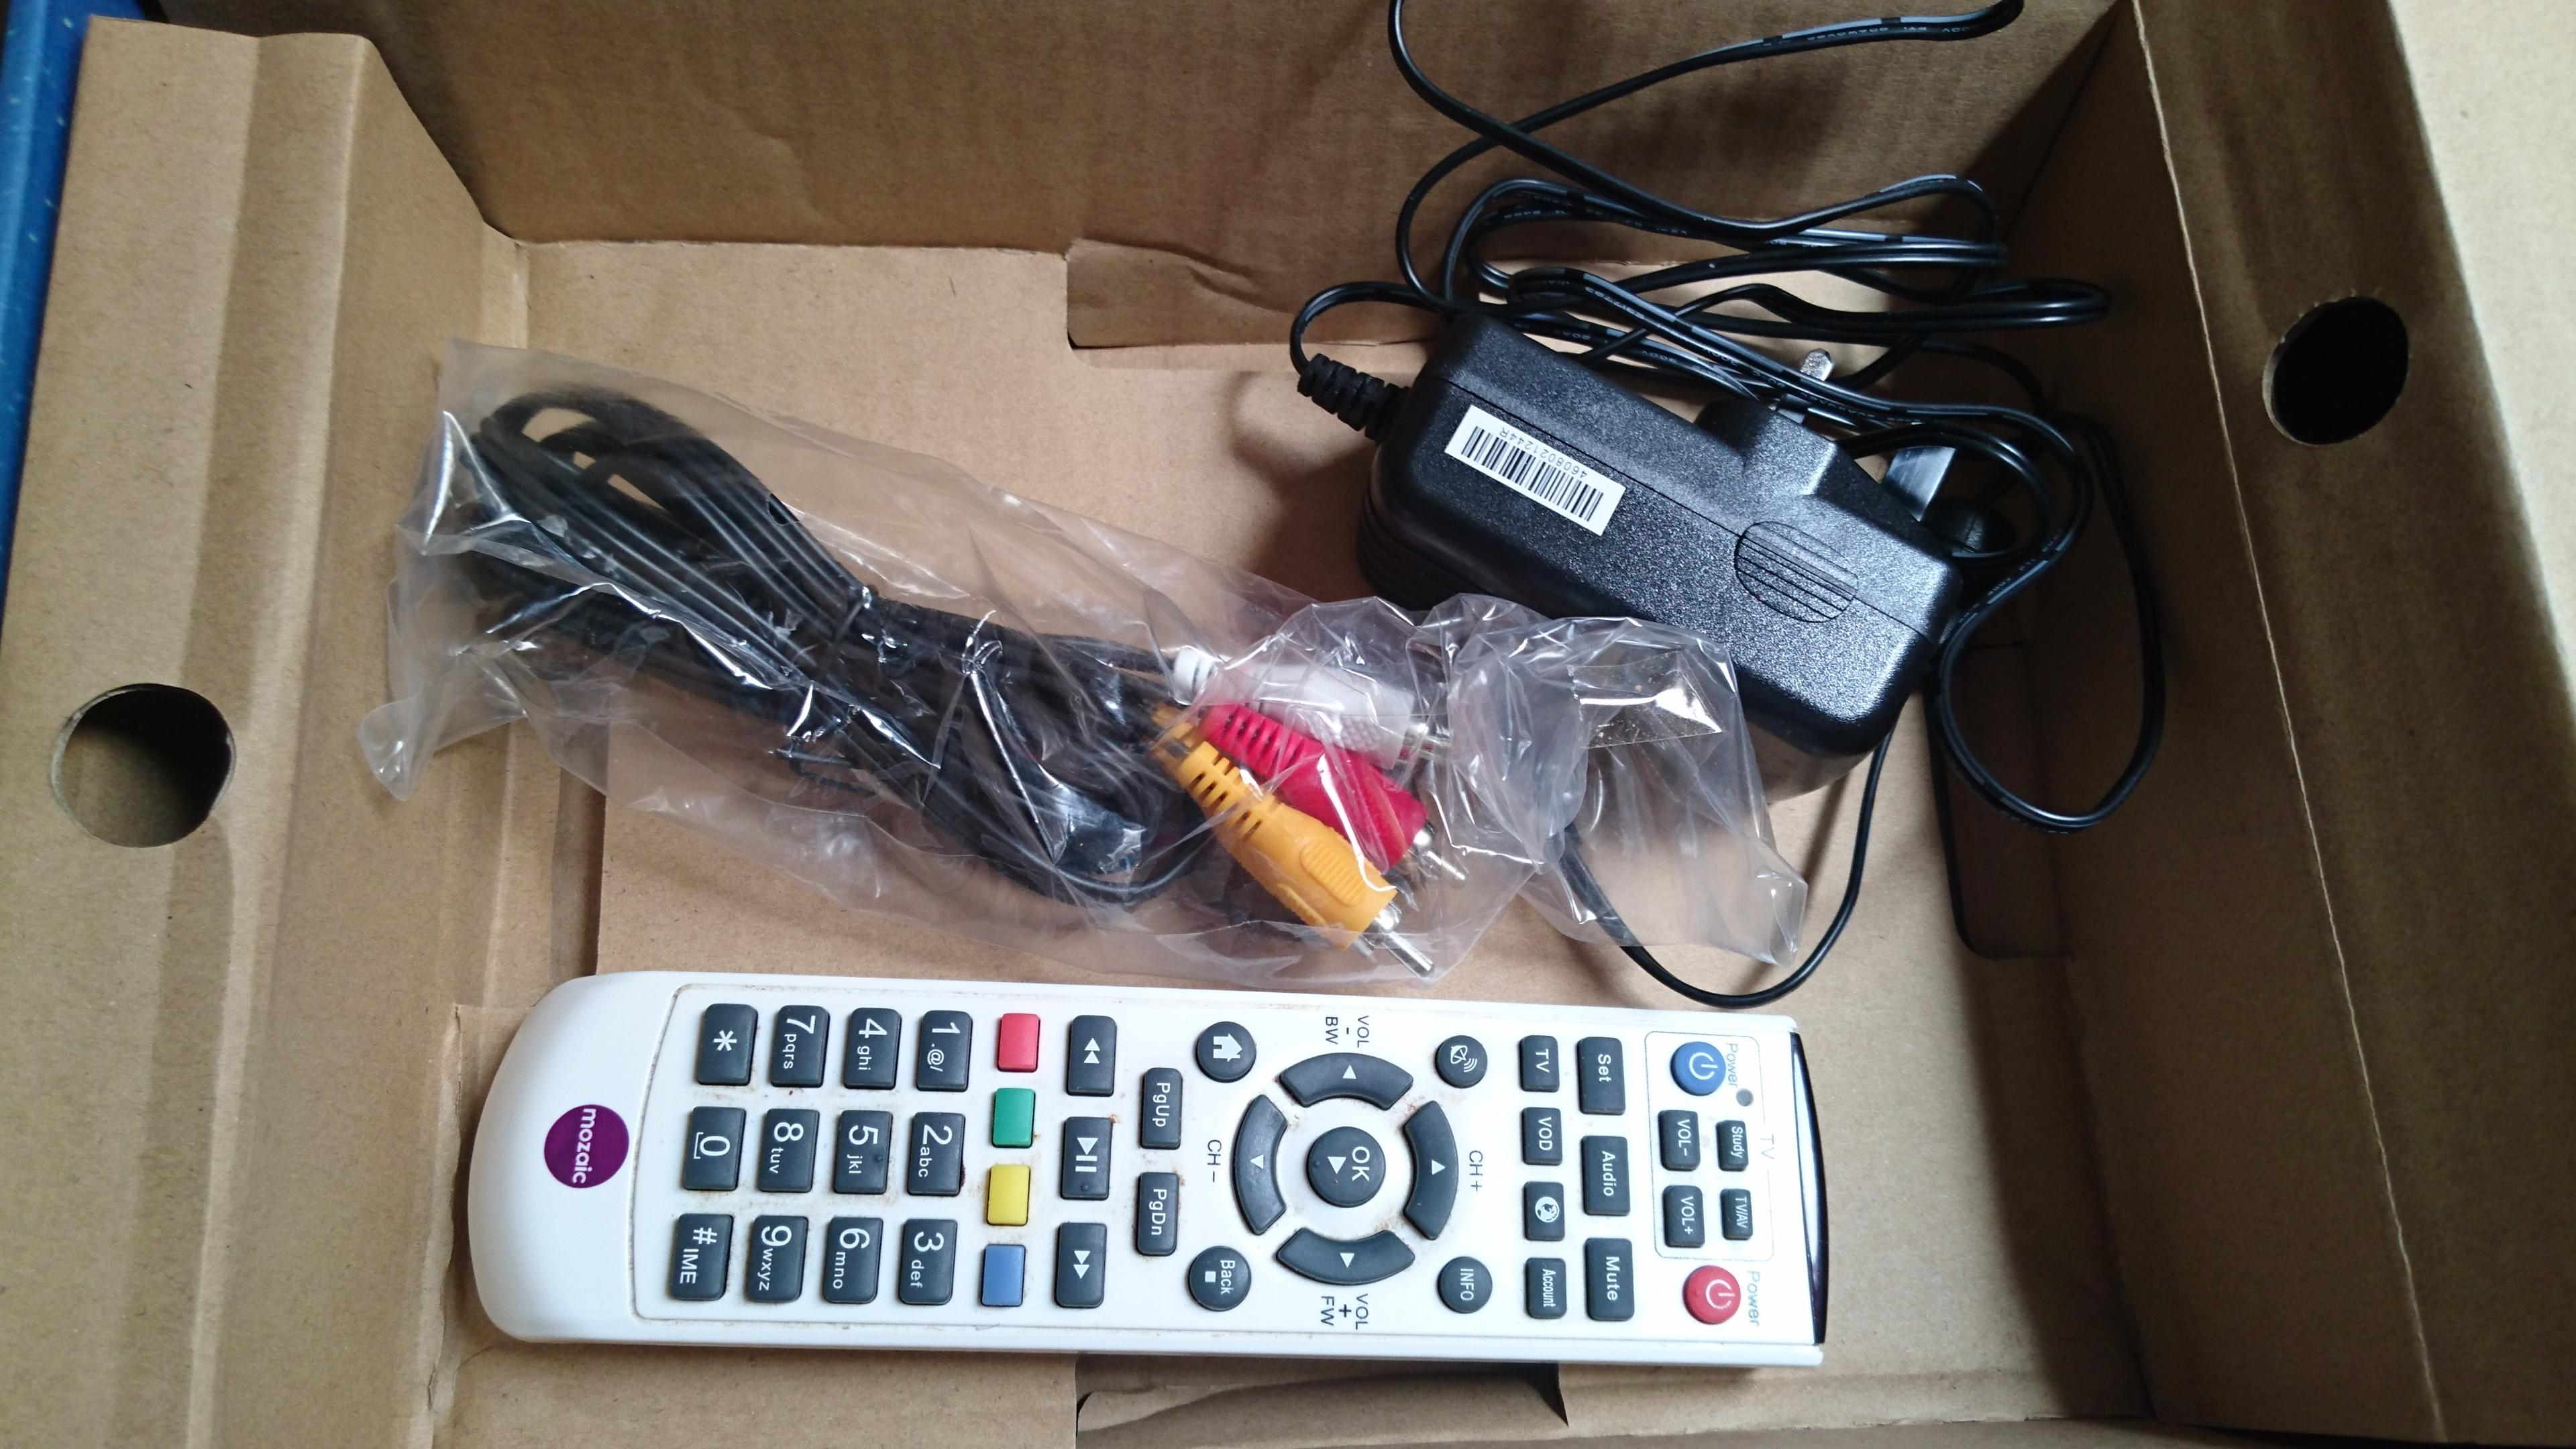 Ooredooset Top Box Free To Air Satellite Tv Disk Qatar Living Wiring